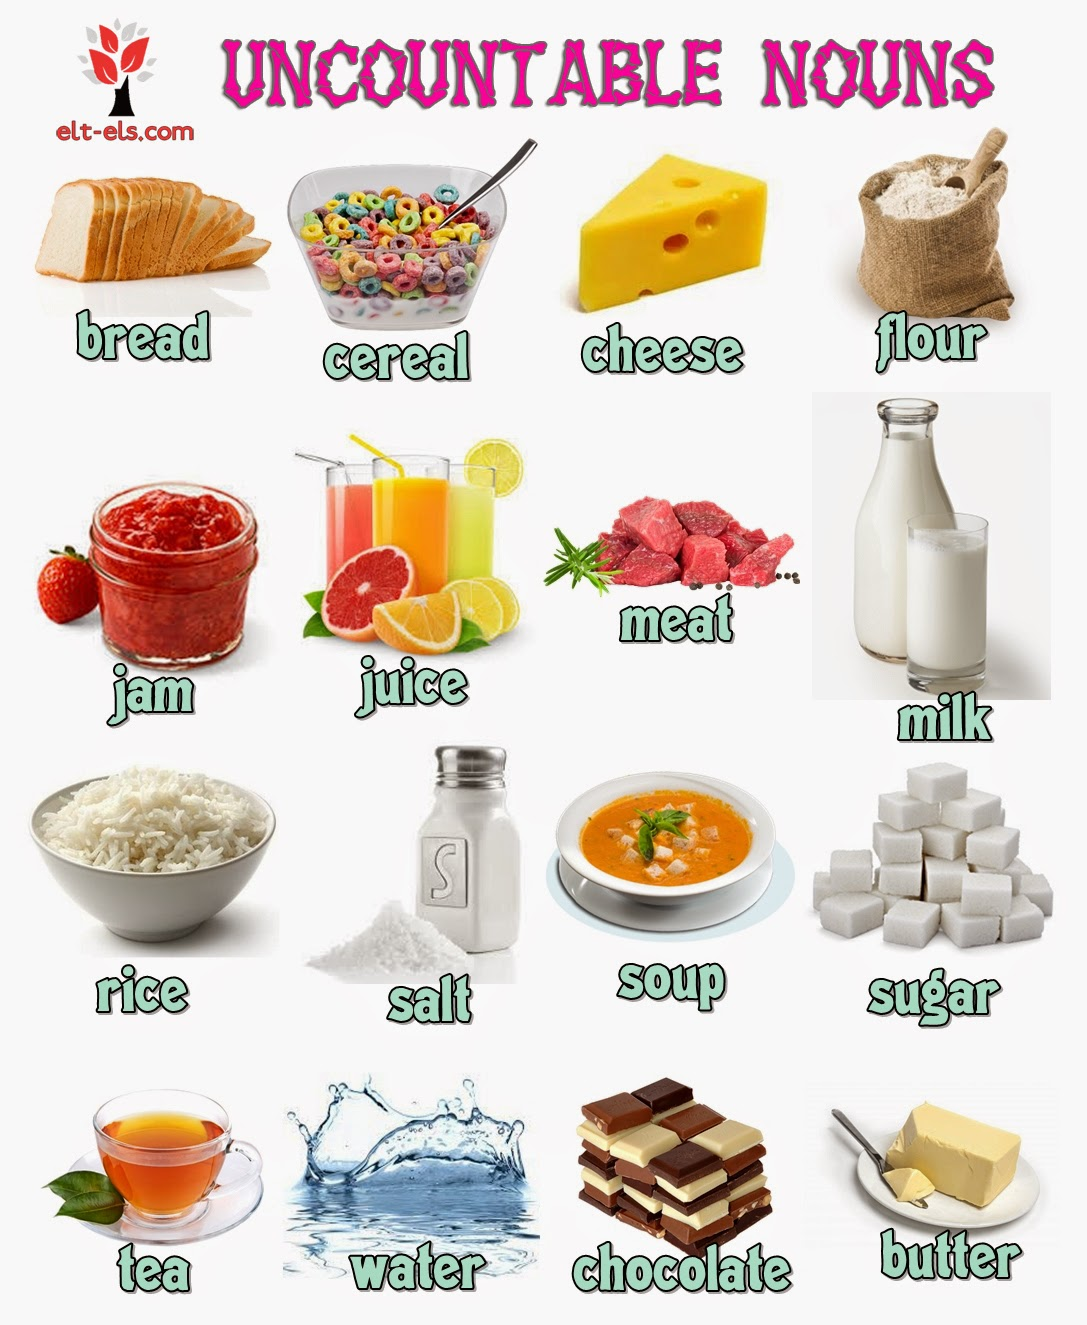 What Type Of Food U Can Eat